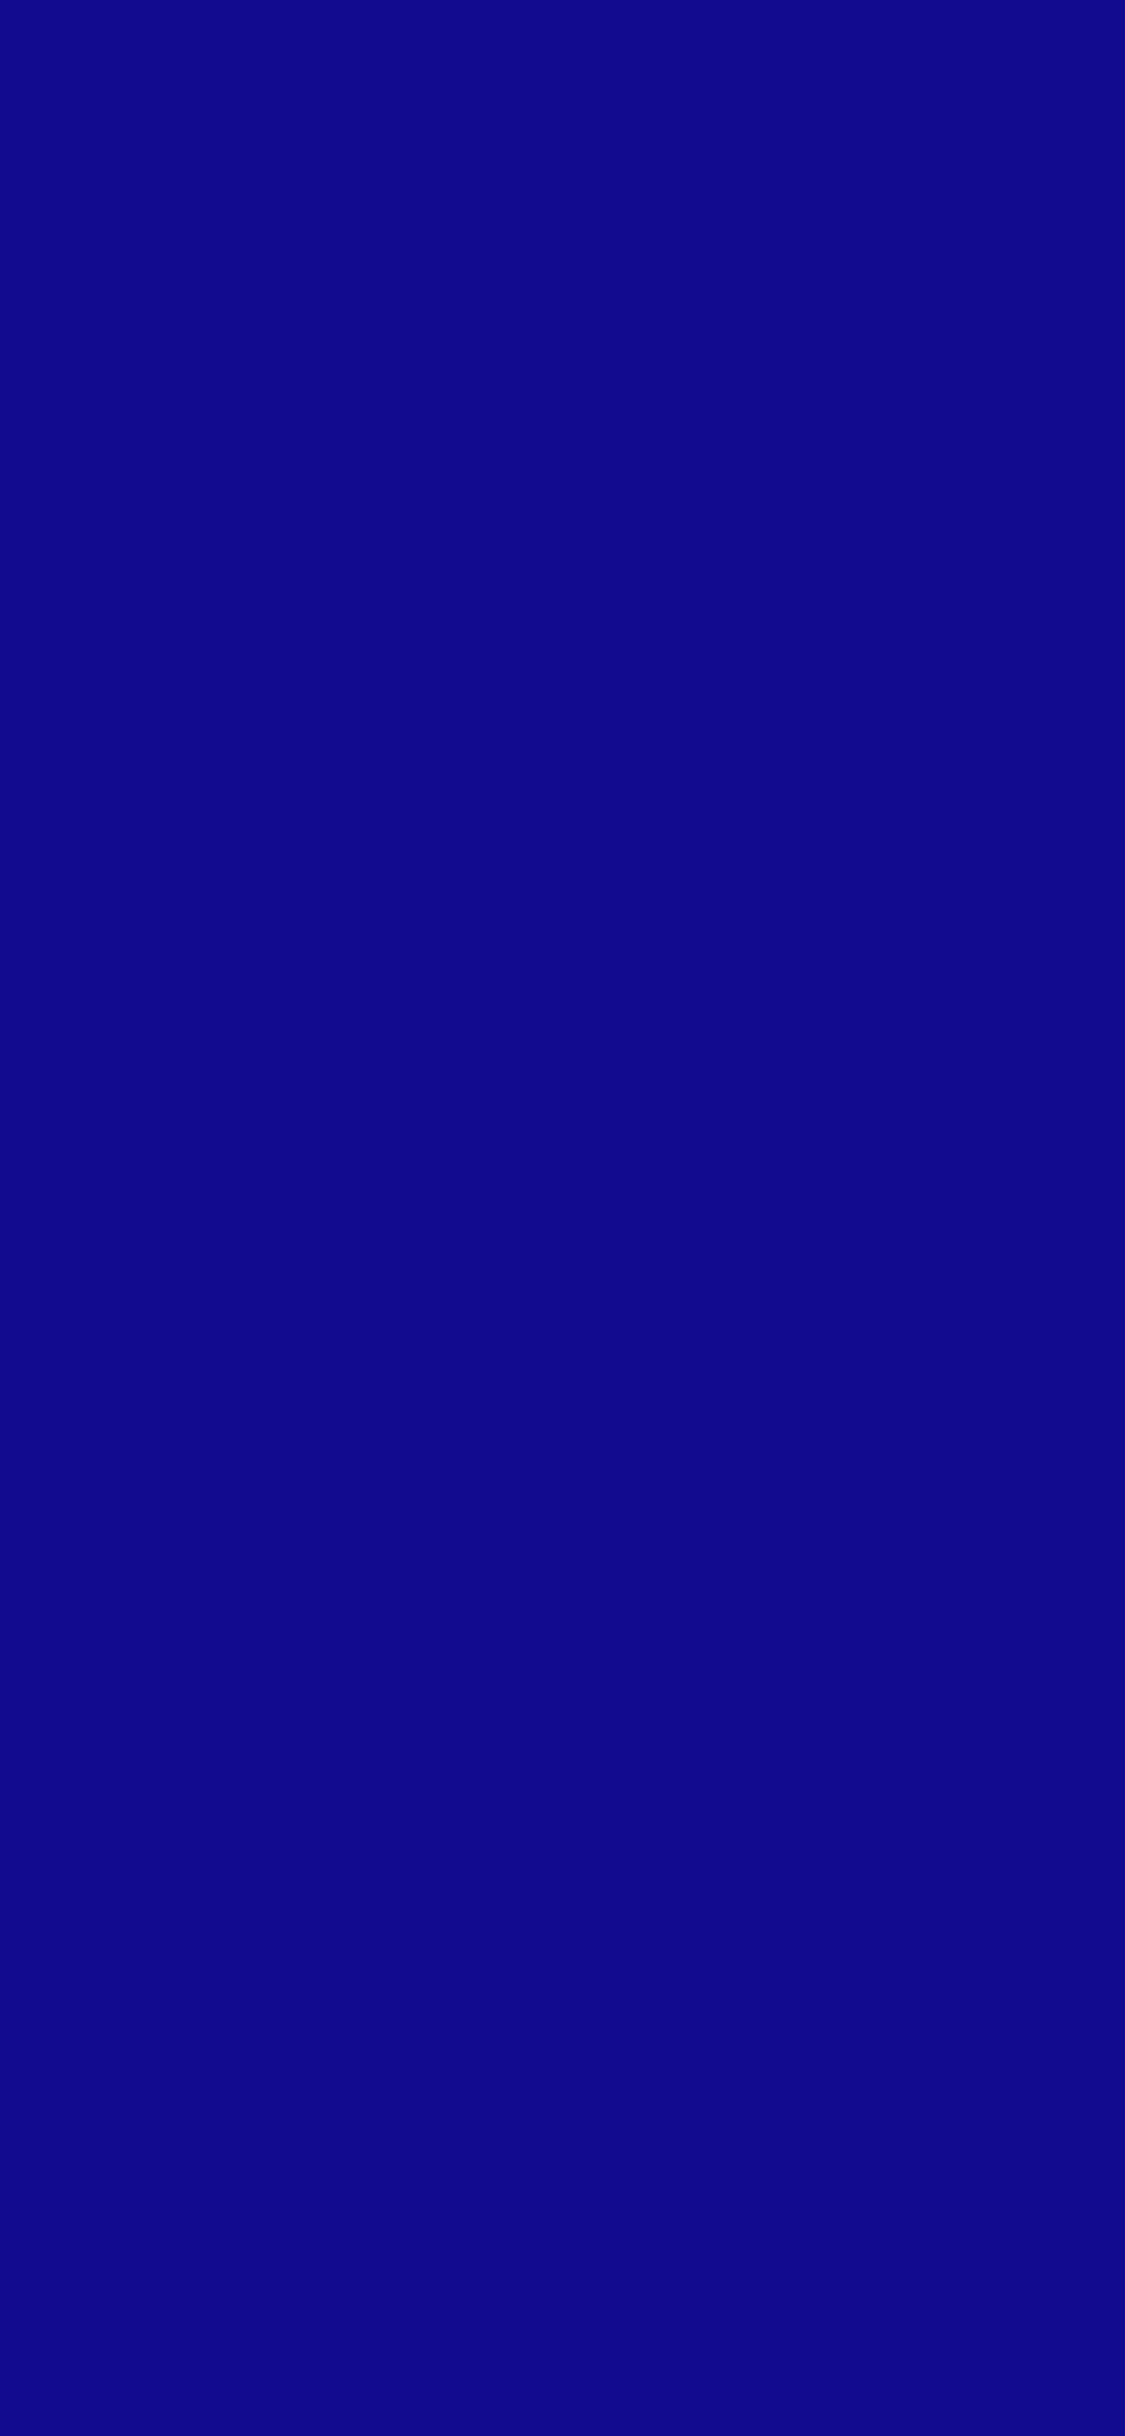 1125x2436 Ultramarine Solid Color Background